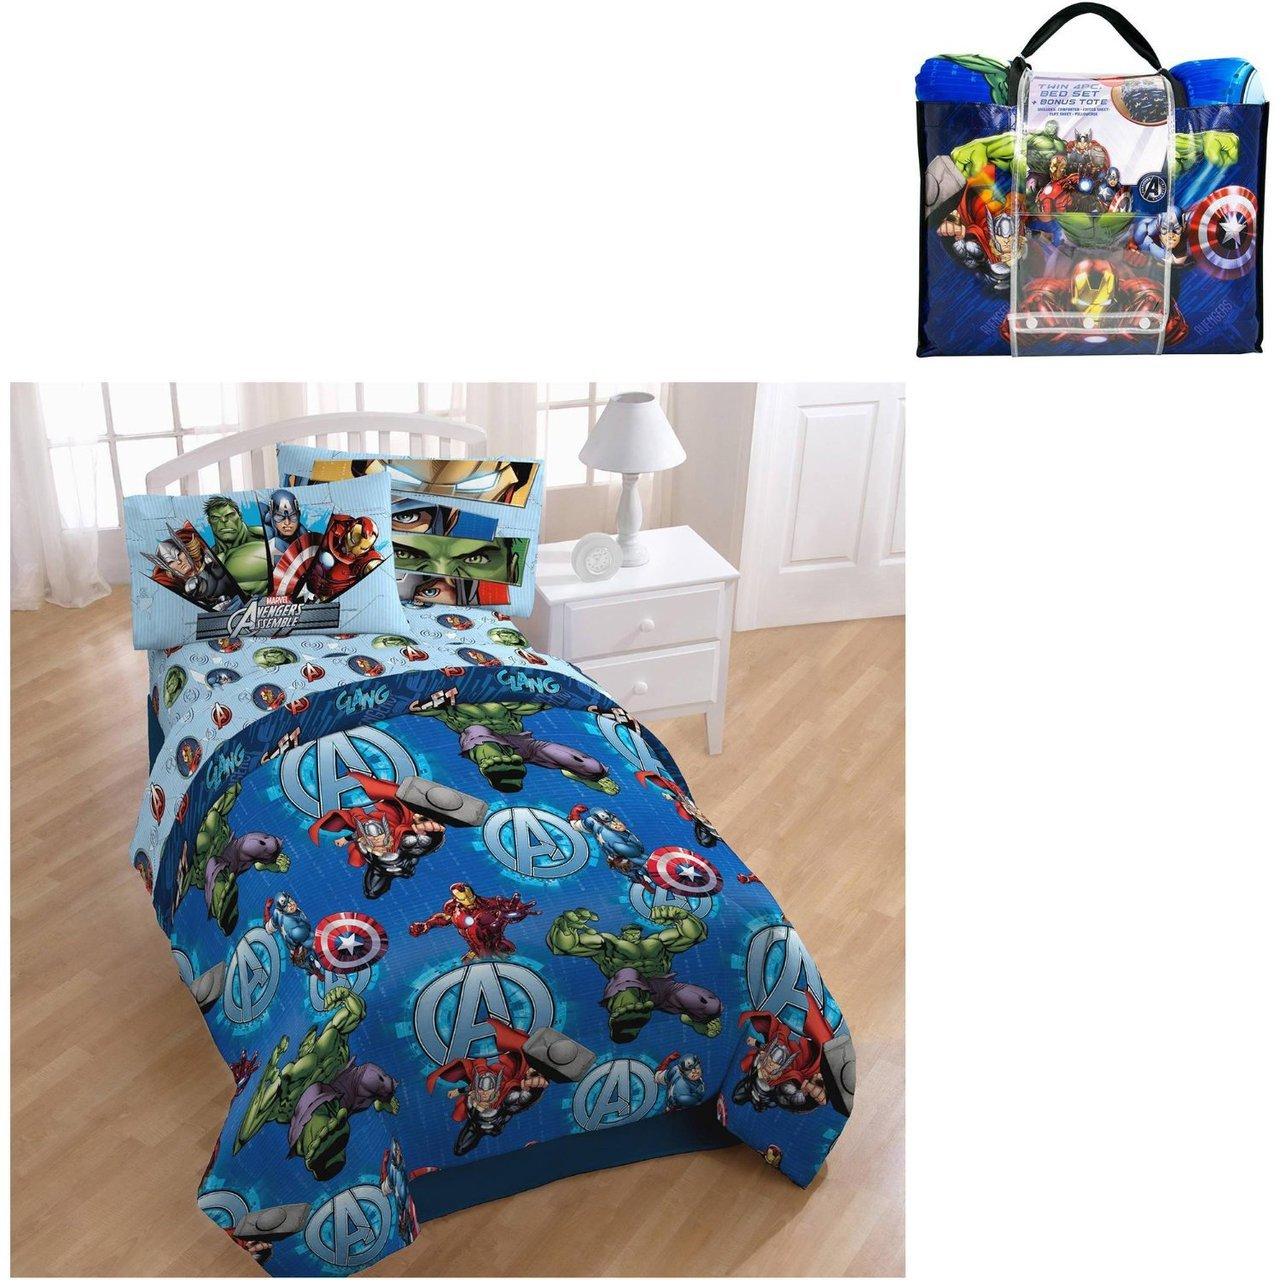 MARVEL Avengers Assemble 4-Piece Reversible Twin Bedding Set - Bed in a Bag